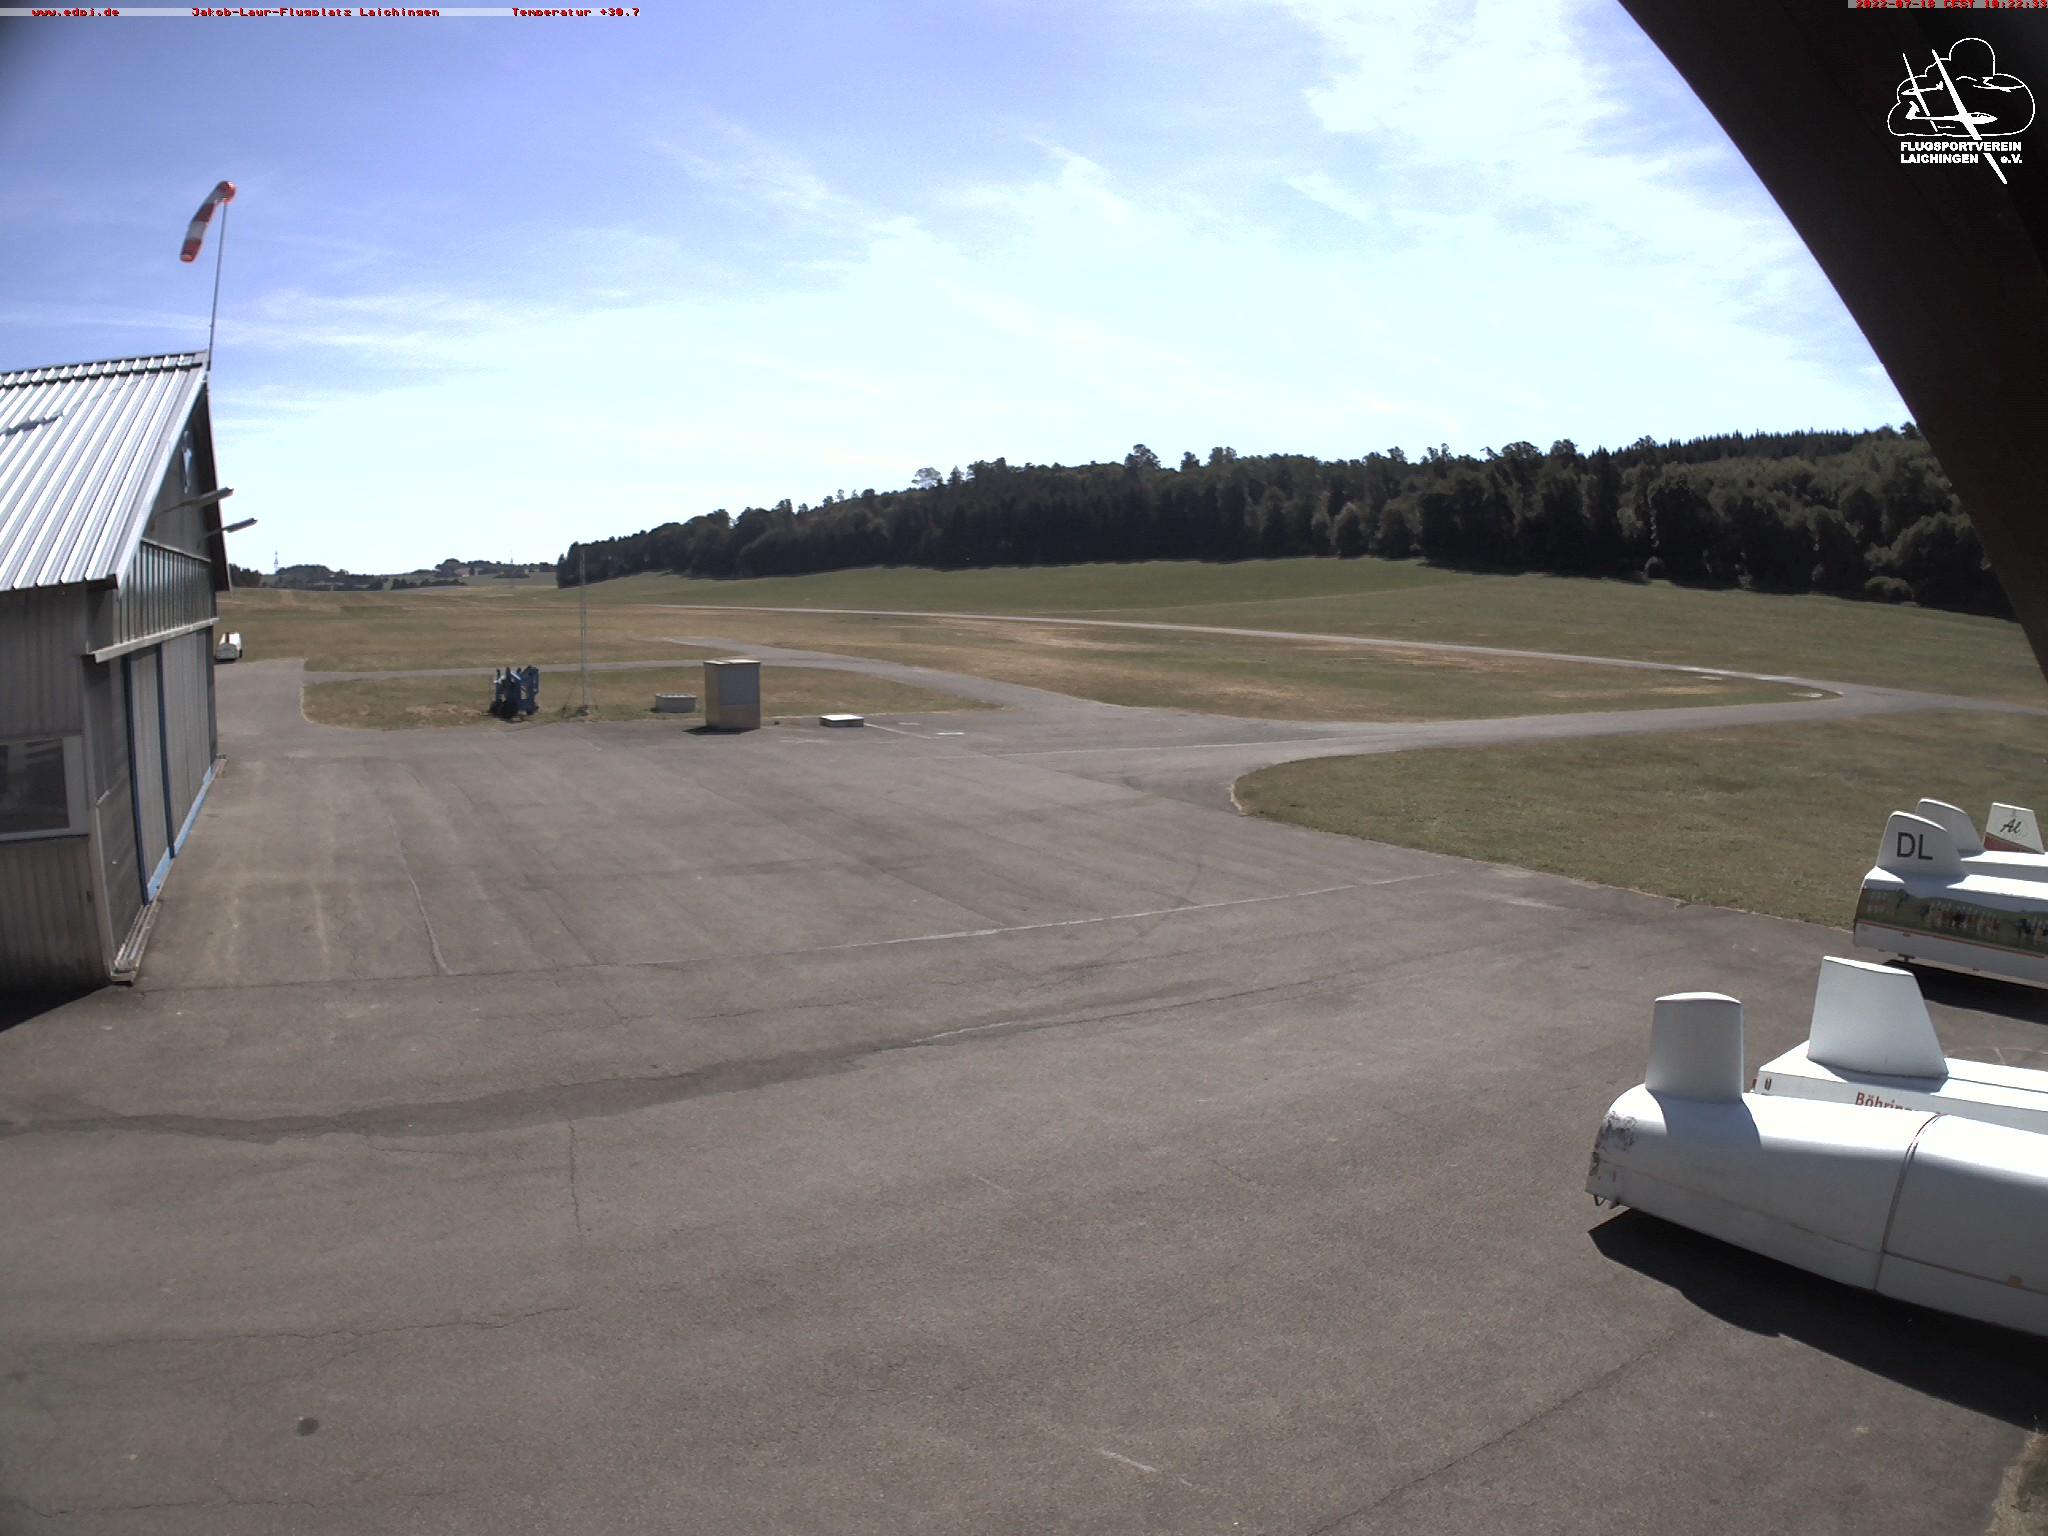 Laichingen Airfield 1